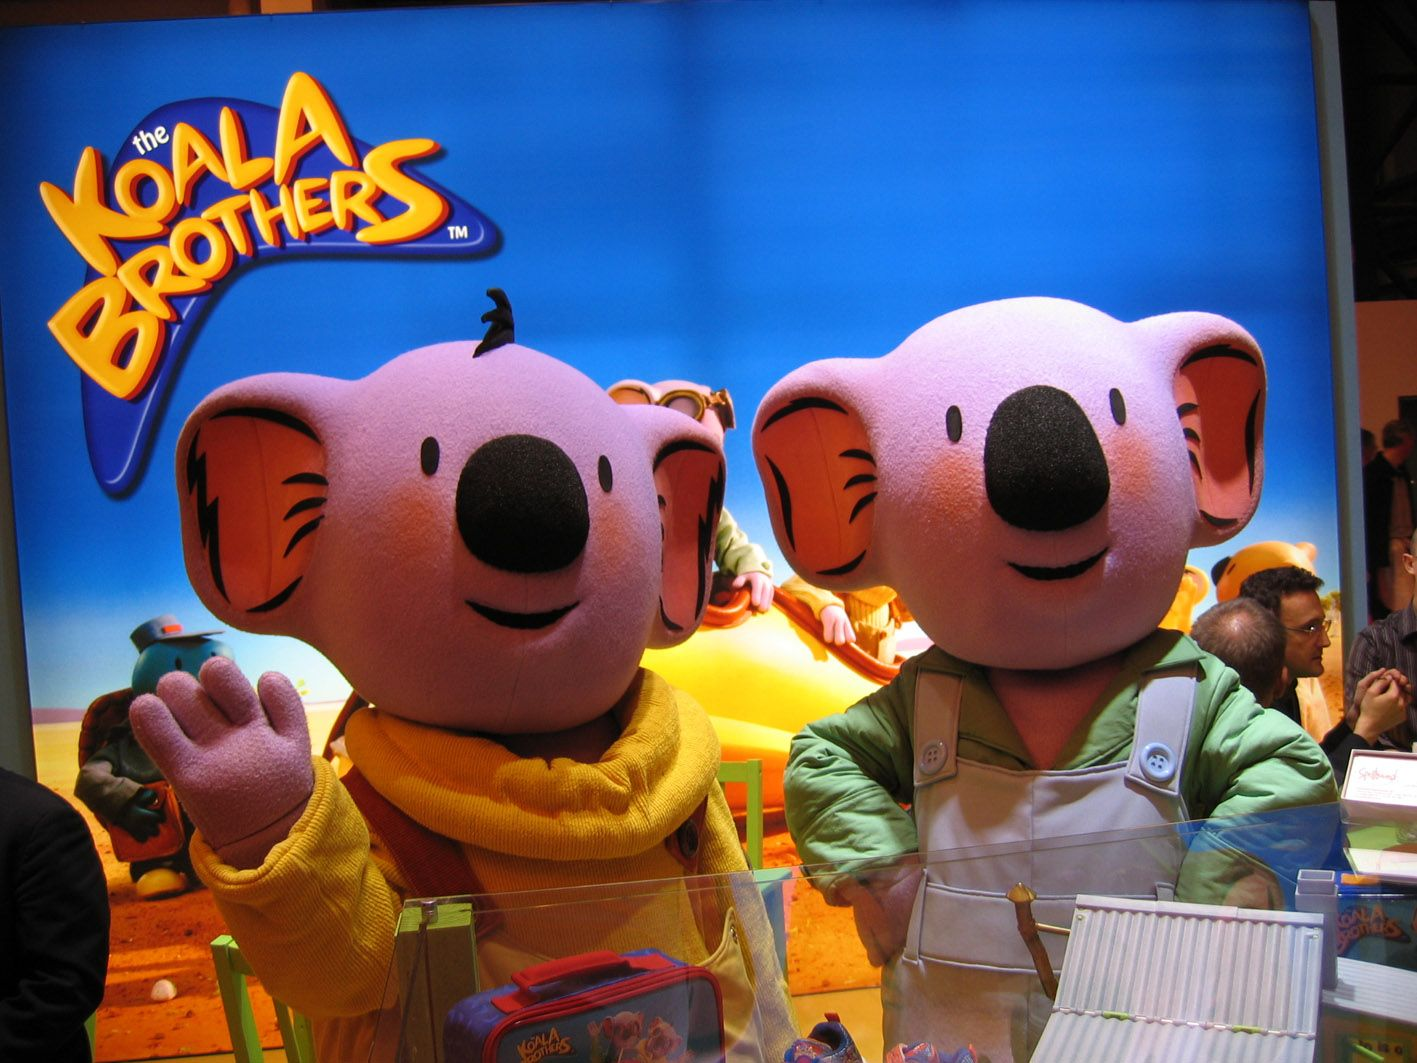 Buster & Frank from The Koala Brothers #mascot #costume